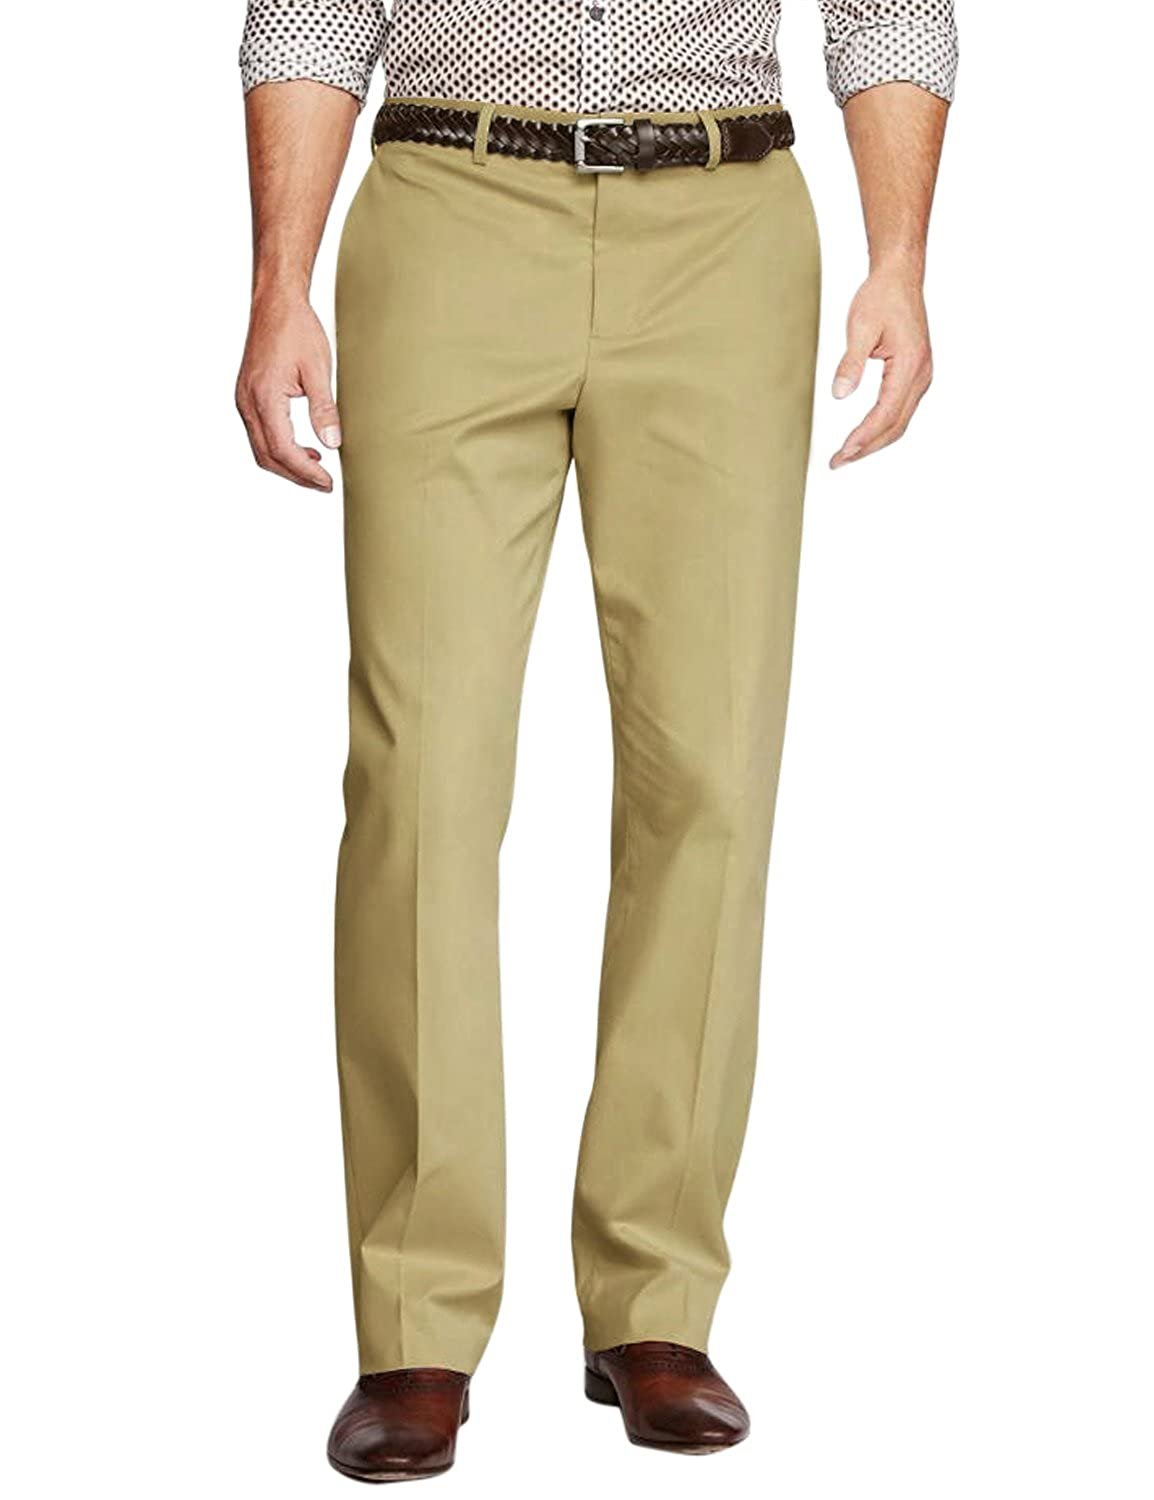 a4d4330c30 Match Men's Straight-Fit Casual Pants M3#8130 at Amazon Men's Clothing  store: